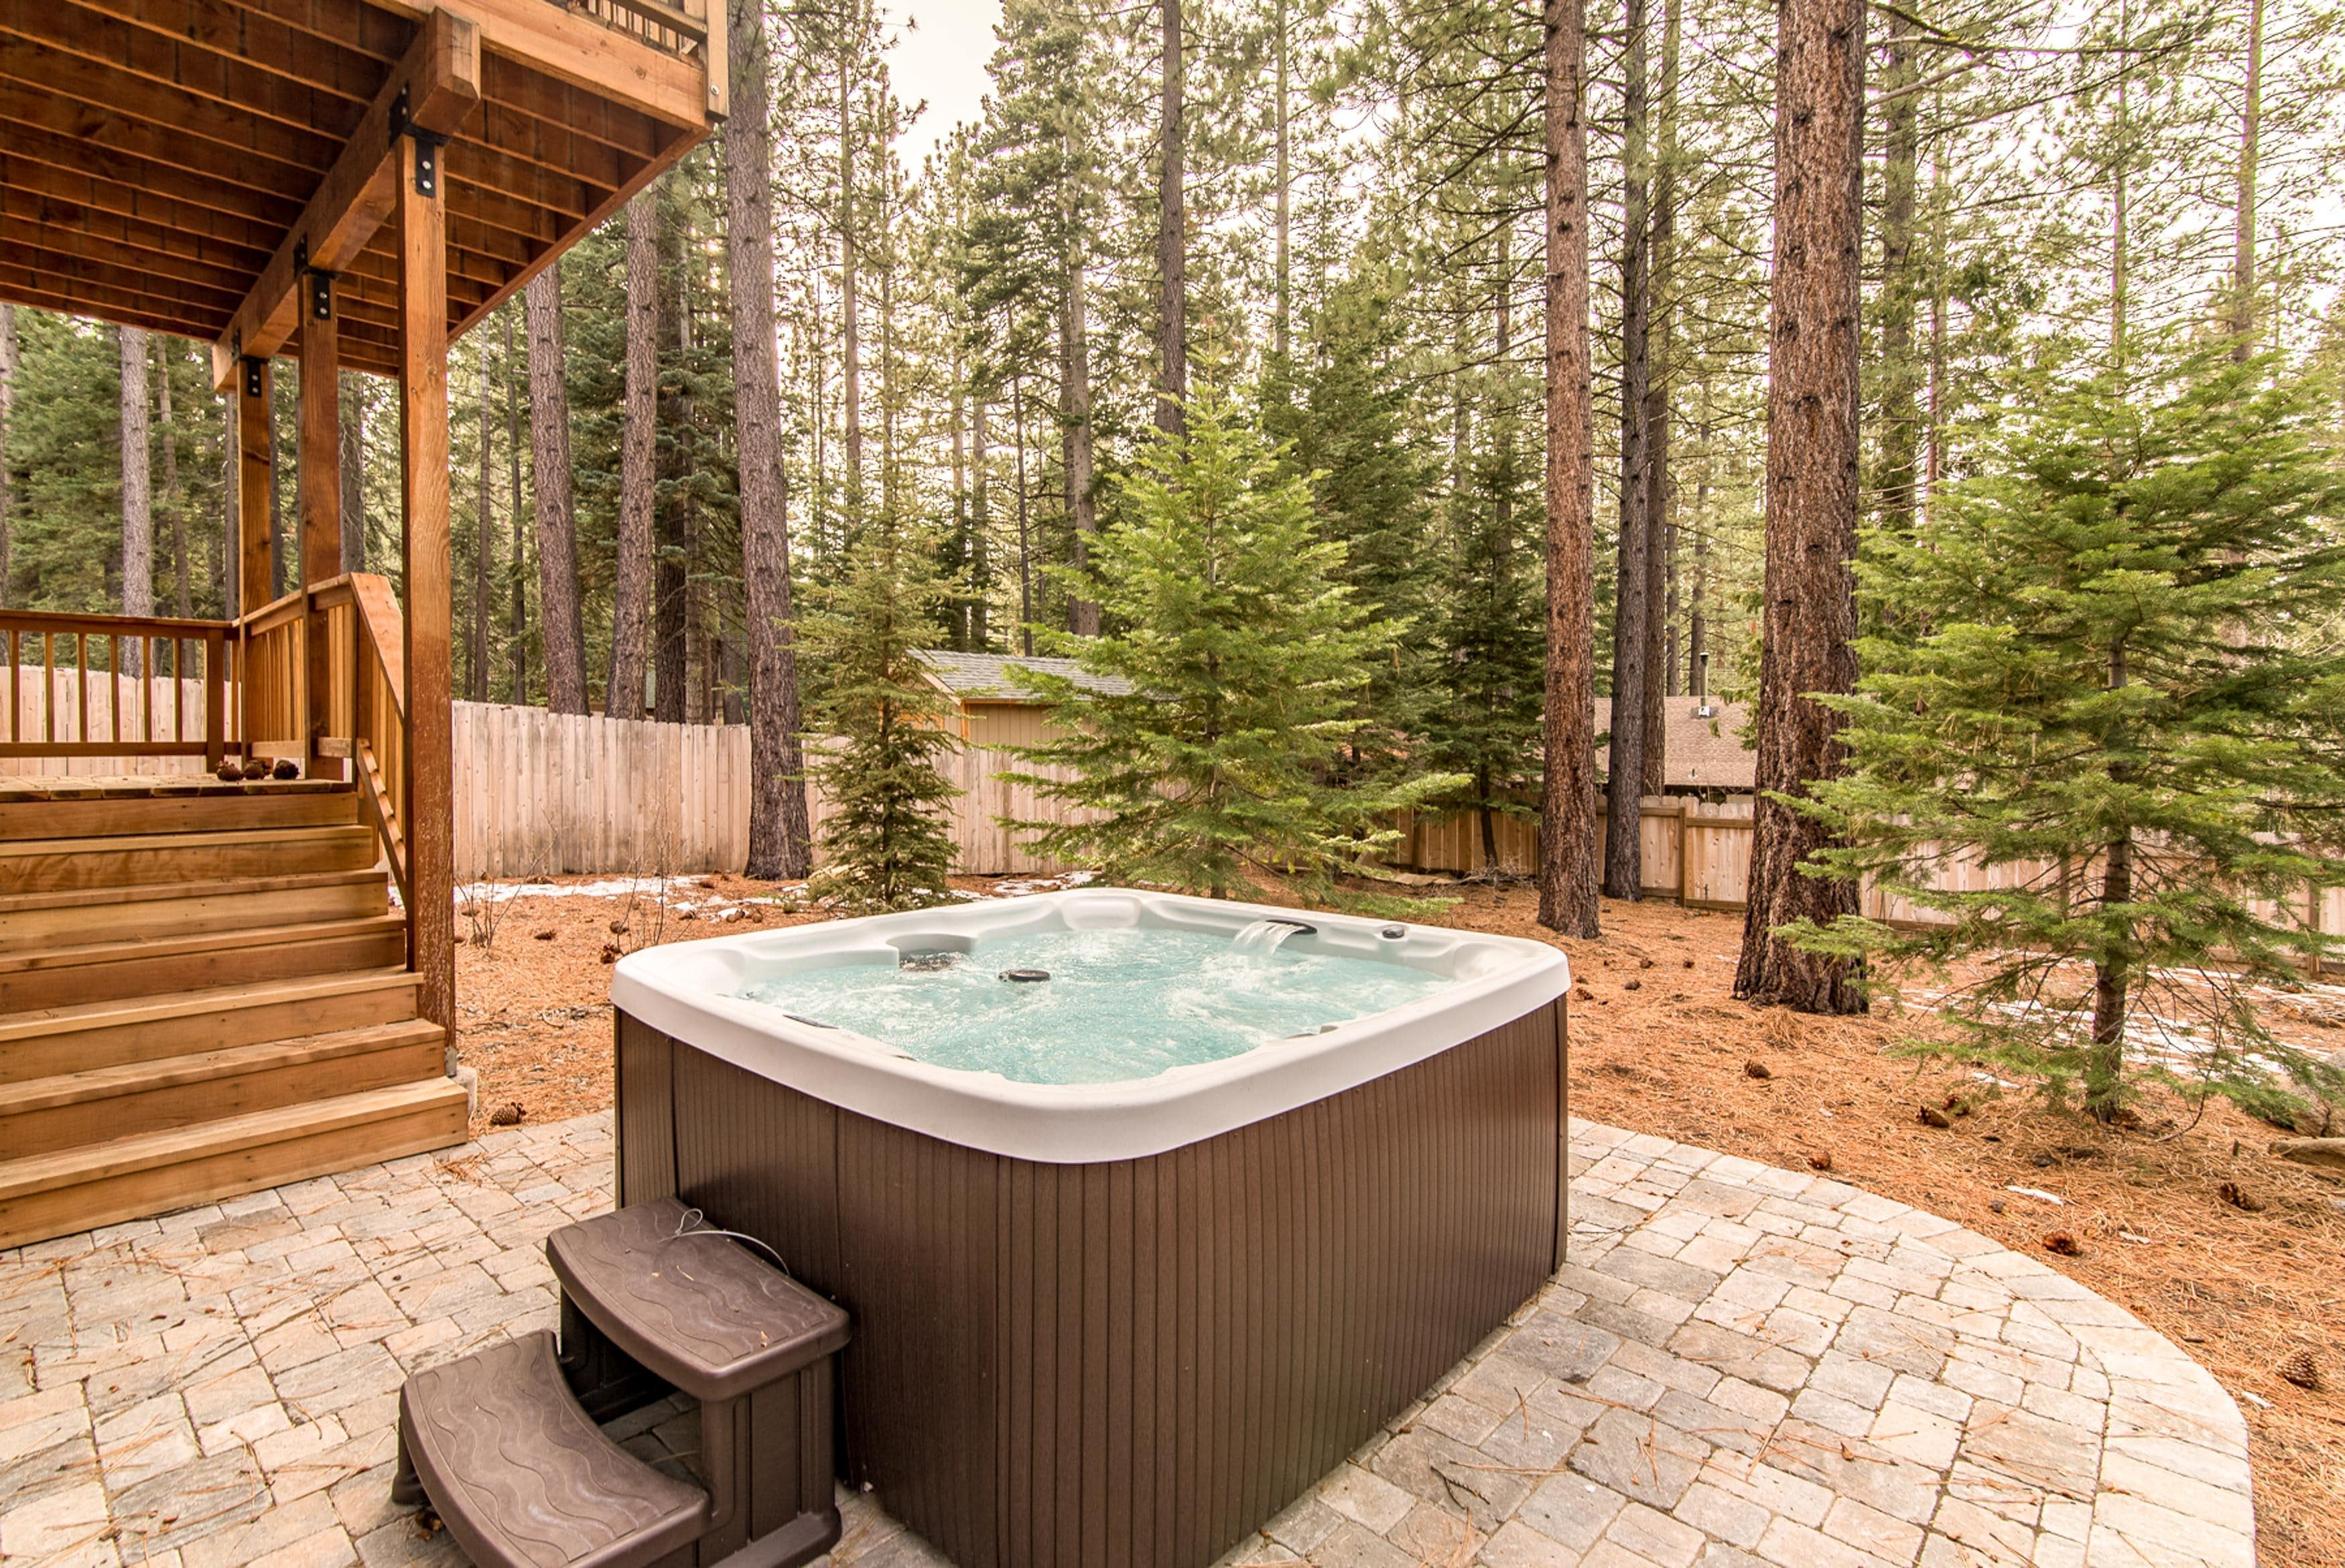 After a day of adventure, unwind in the hot tub.